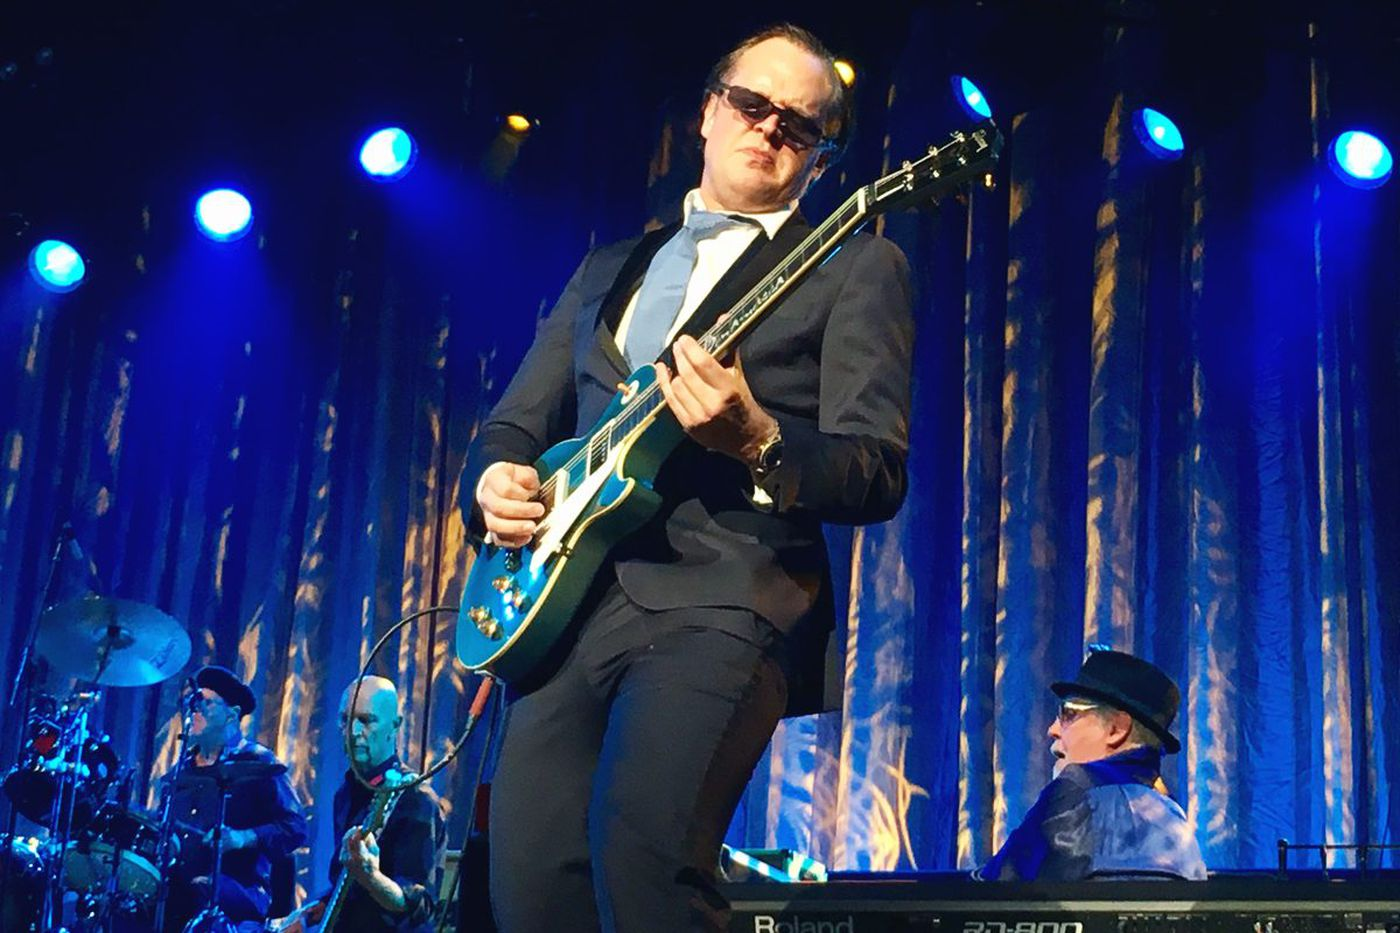 After six years, Joe Bonamassa brings the blues back to Philly's Academy of Music